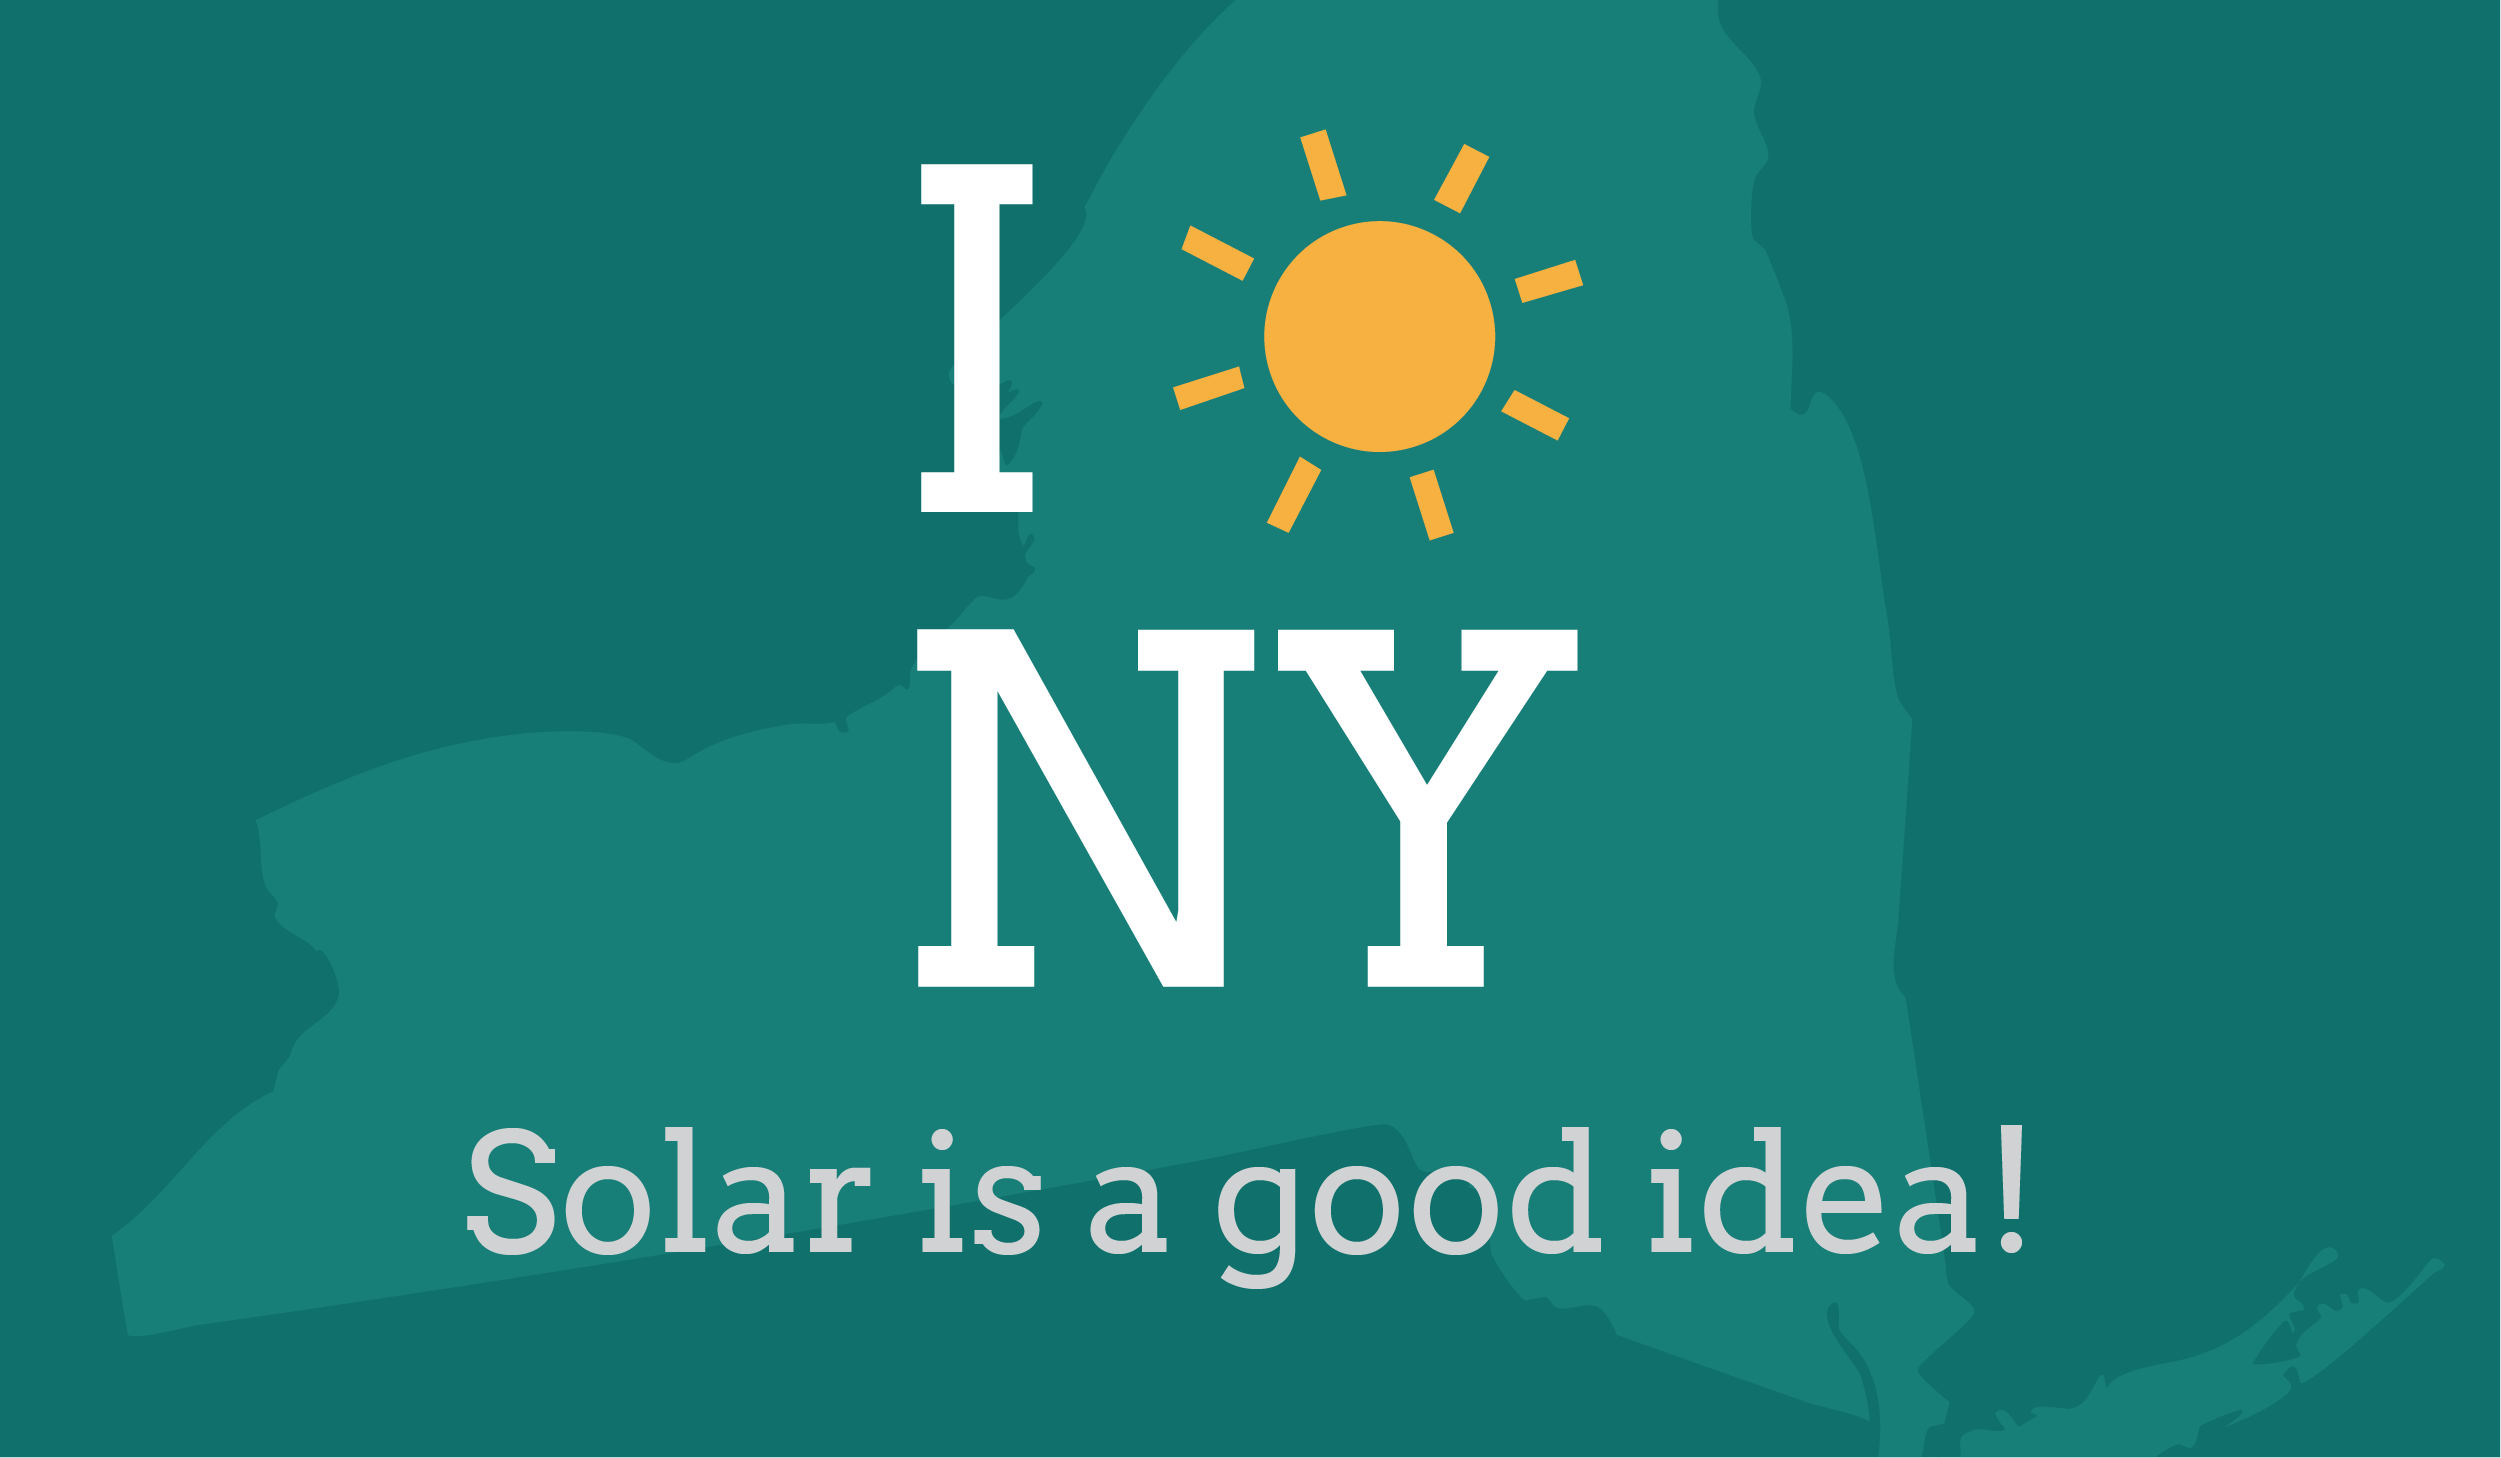 new york state solar tax credit 2016 energysage